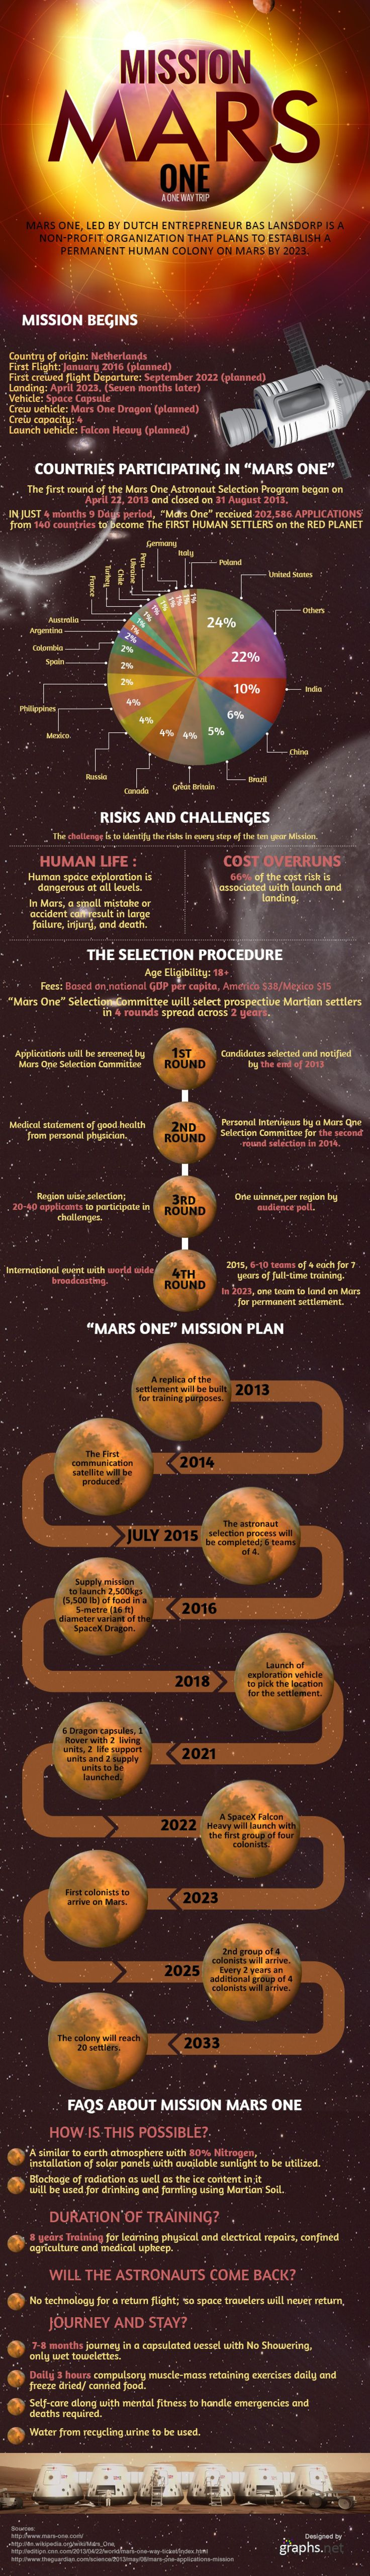 Tycho Brahe Solar System Diagramjpg 11 Best Robot Wars Images On Pinterest Outer Space Red Planet And Mars Mission Infographic The Future Of Exploration Http Futuristicnews